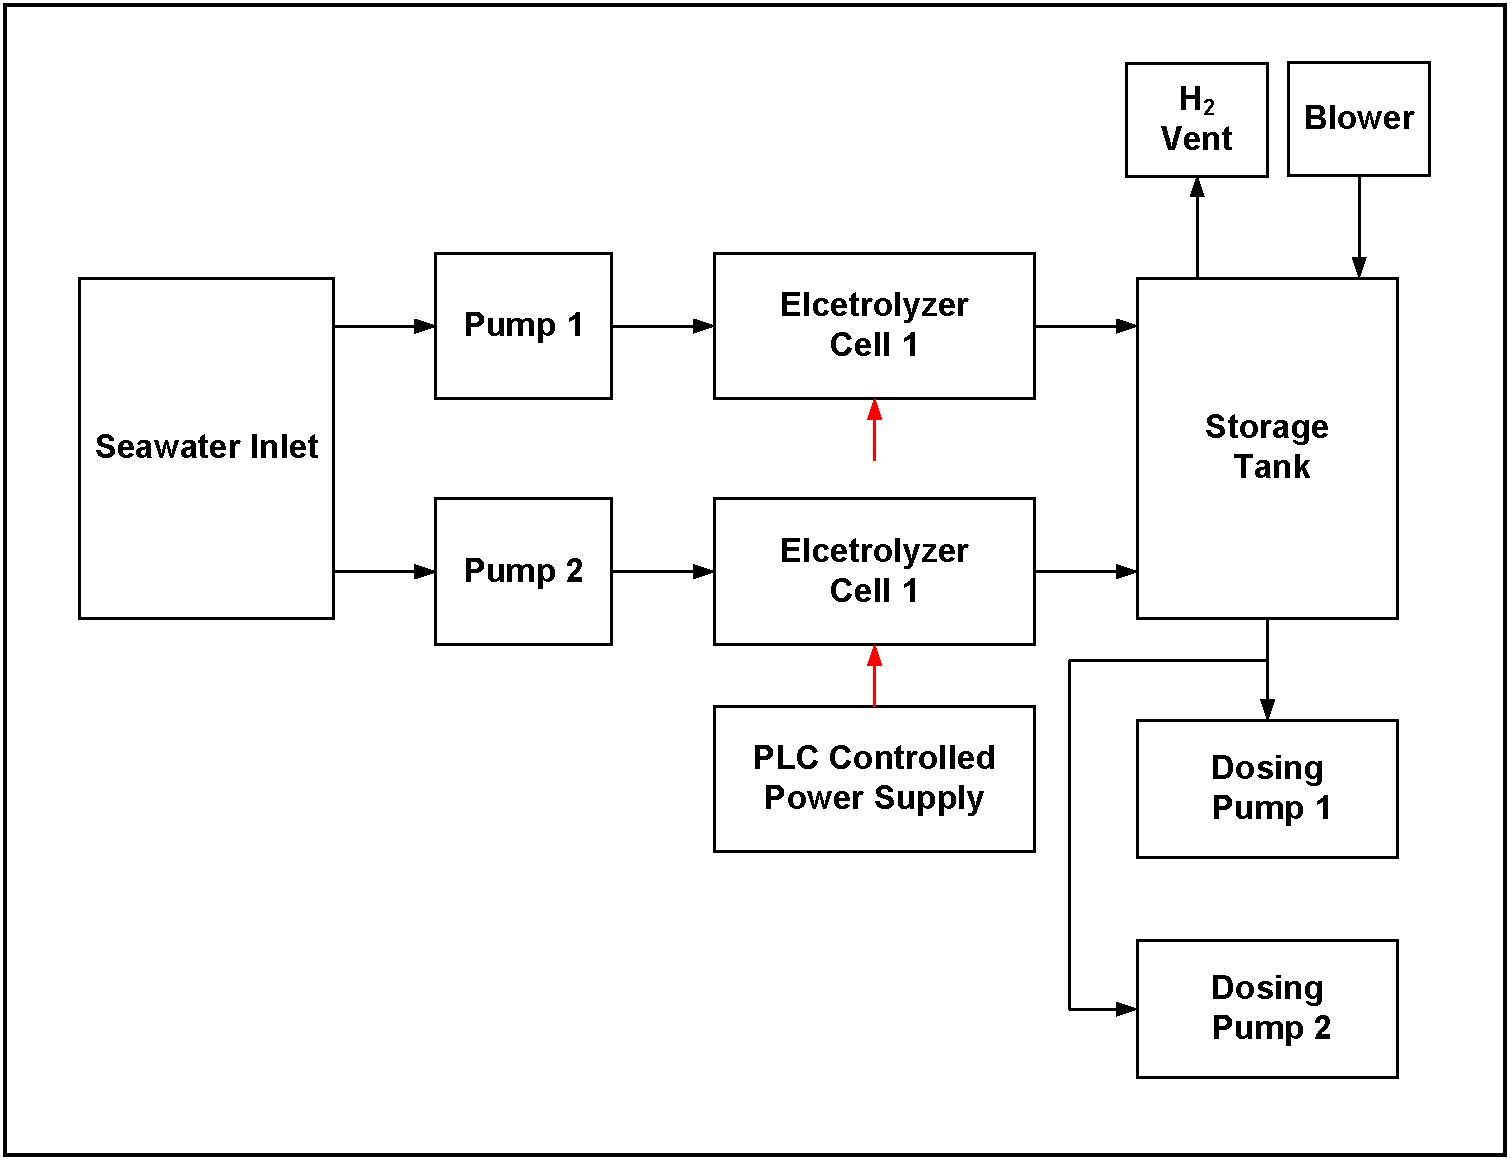 Chlorcehco Water Processing Solutions August 2013 Block Diagram For Power Supply Is Given Below The Of System Shown